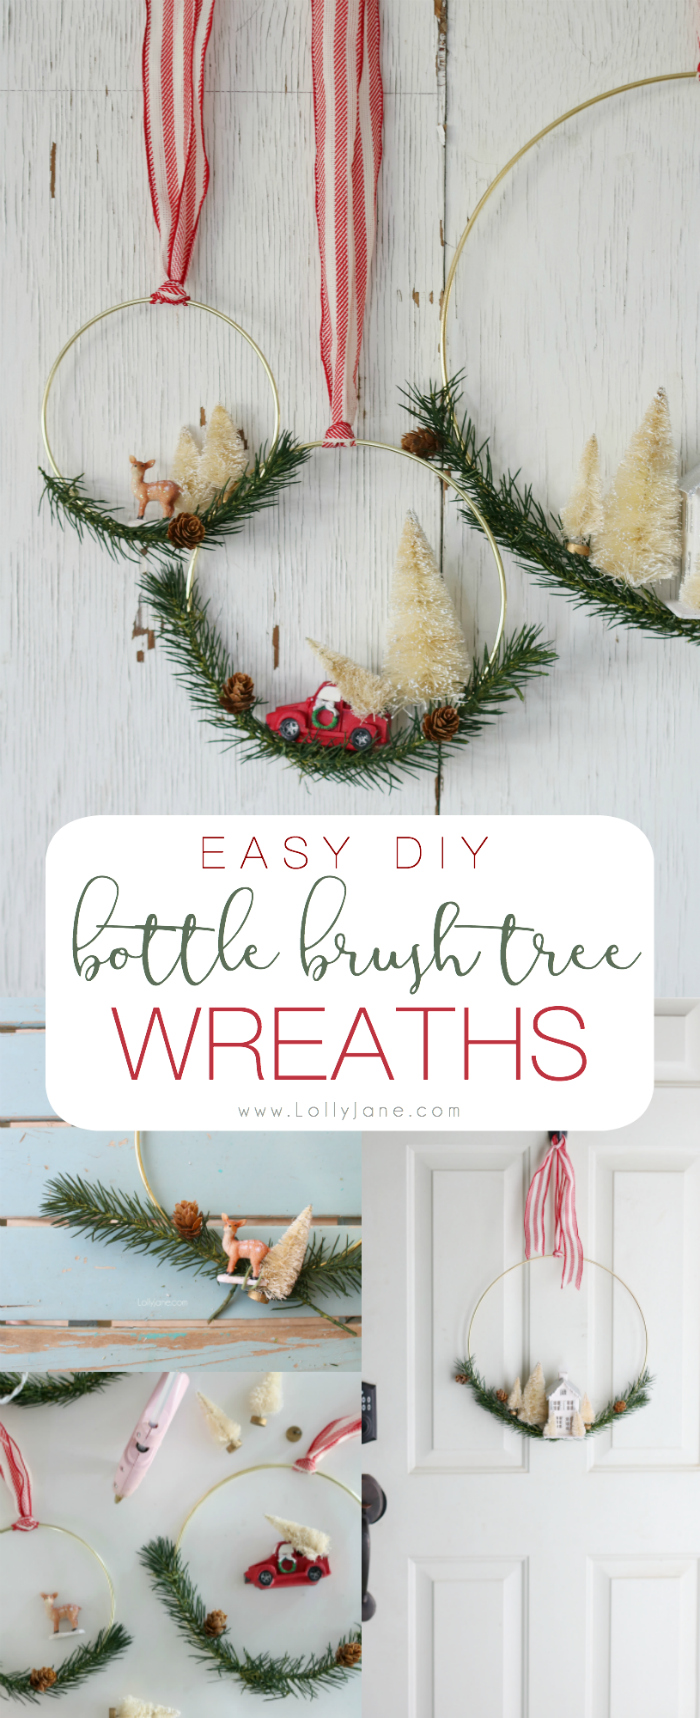 Easy DIY Bottle Brush Tree Wreaths. Perfect to display at Christmas time. So cute! Easy to make in less than an hour!